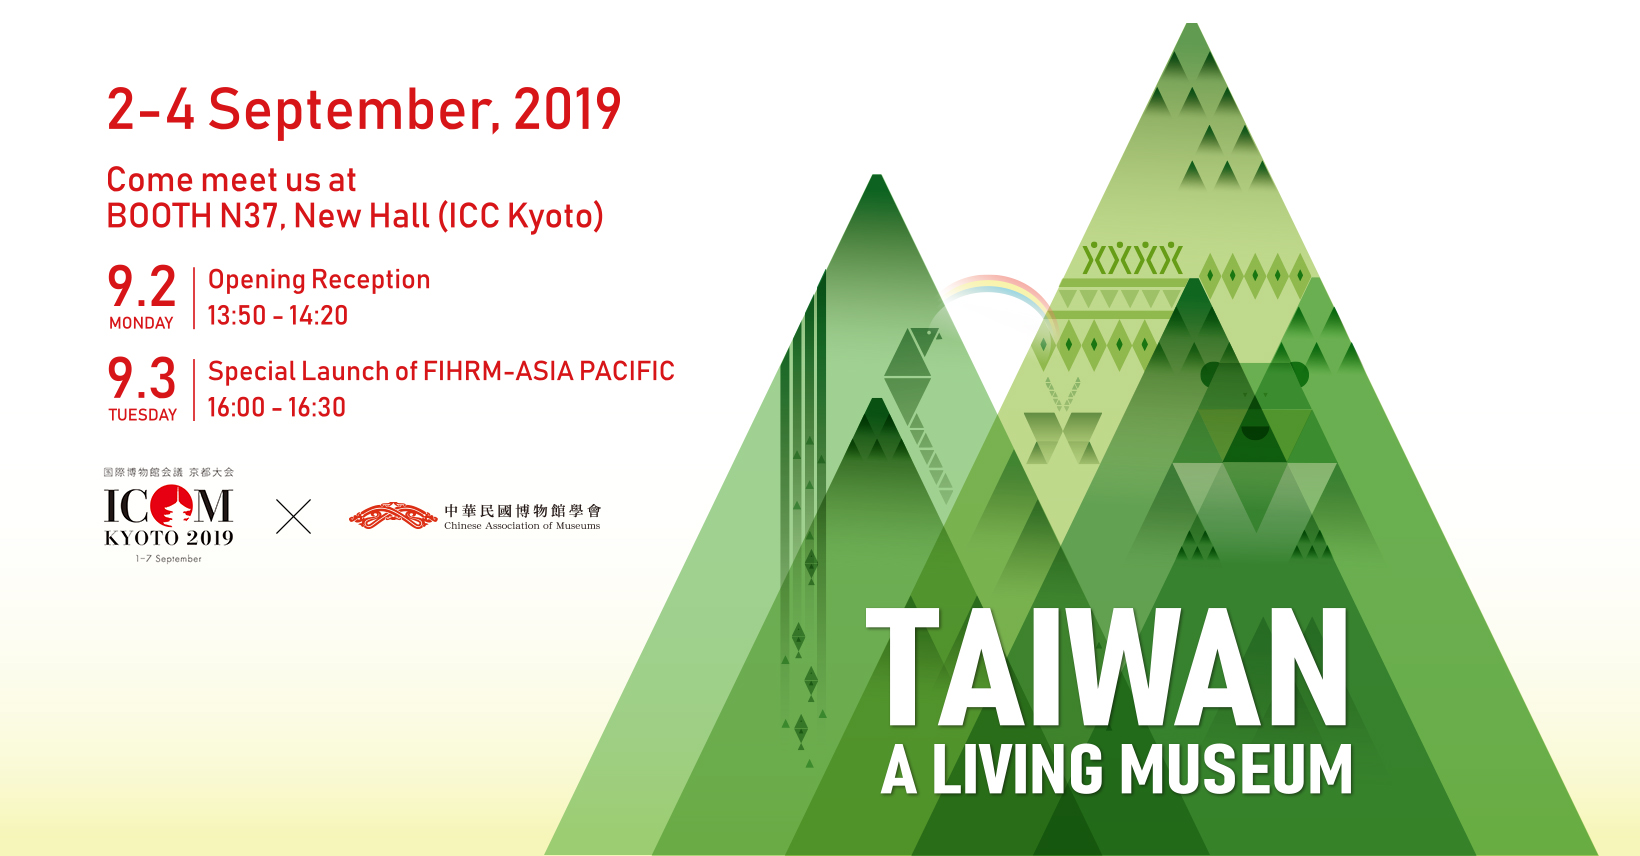 Taiwan to promote inclusive values at Kyoto ICOM museum summit